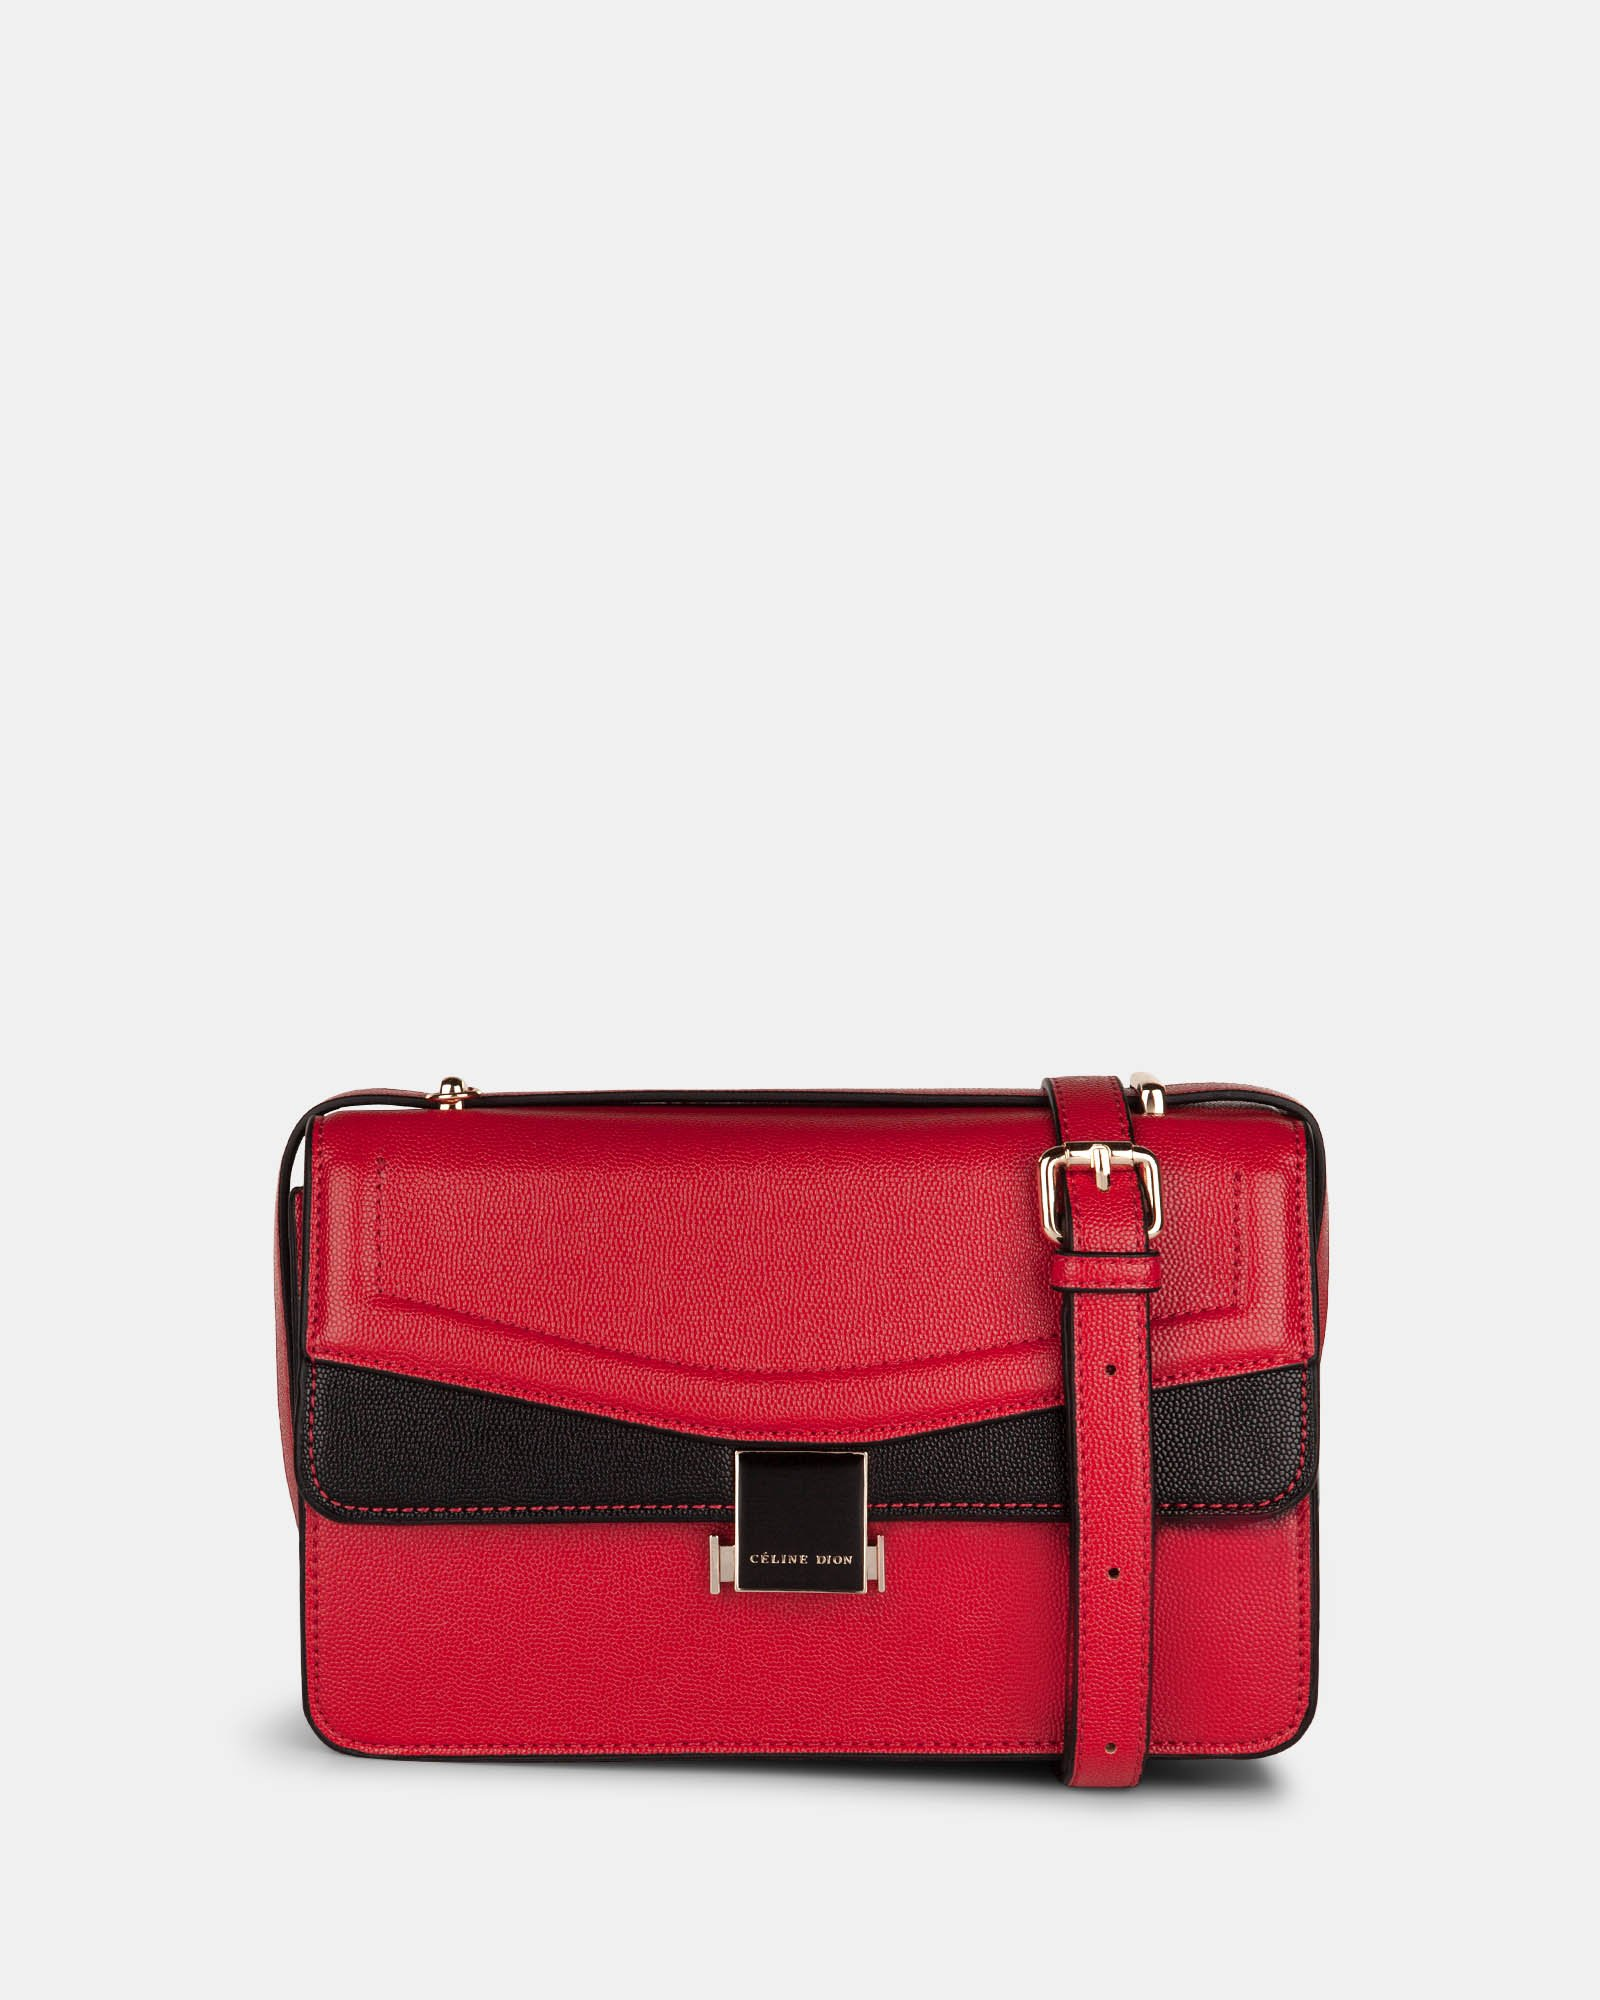 Scale – Leather-like flap bag - red - Céline Dion - Zoom